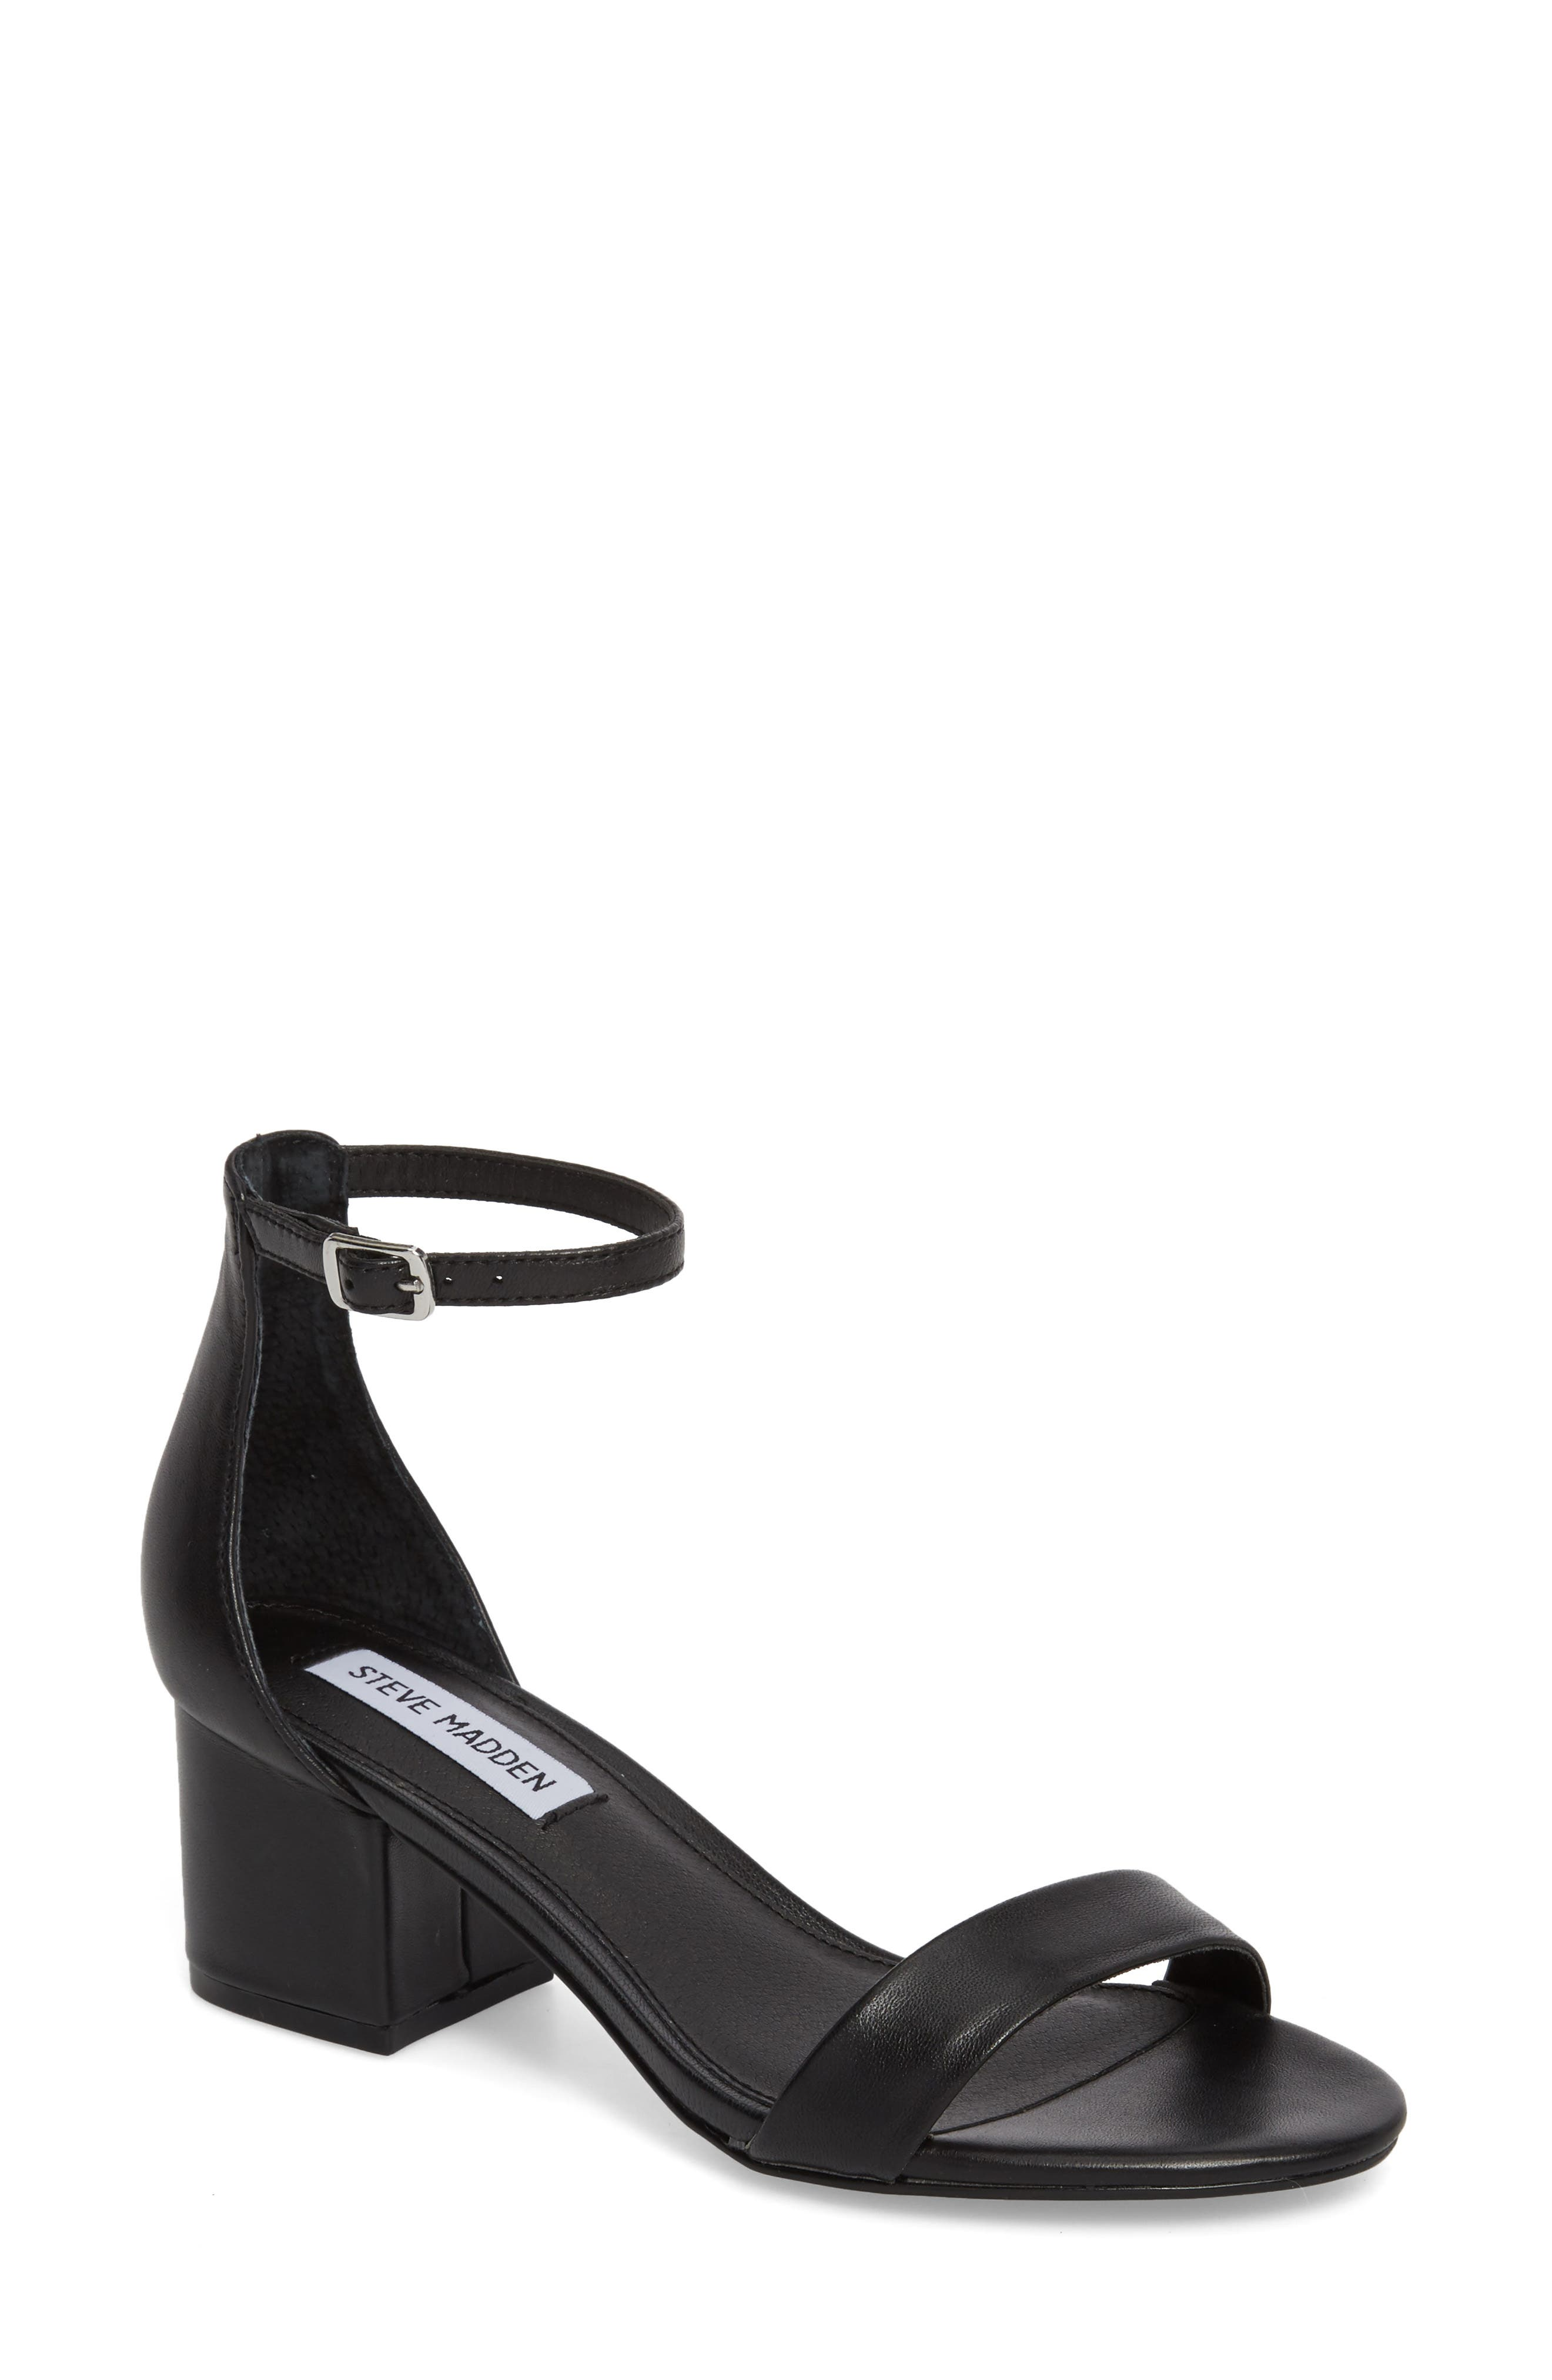 Irenee Ankle Strap Sandal, Main, color, 001